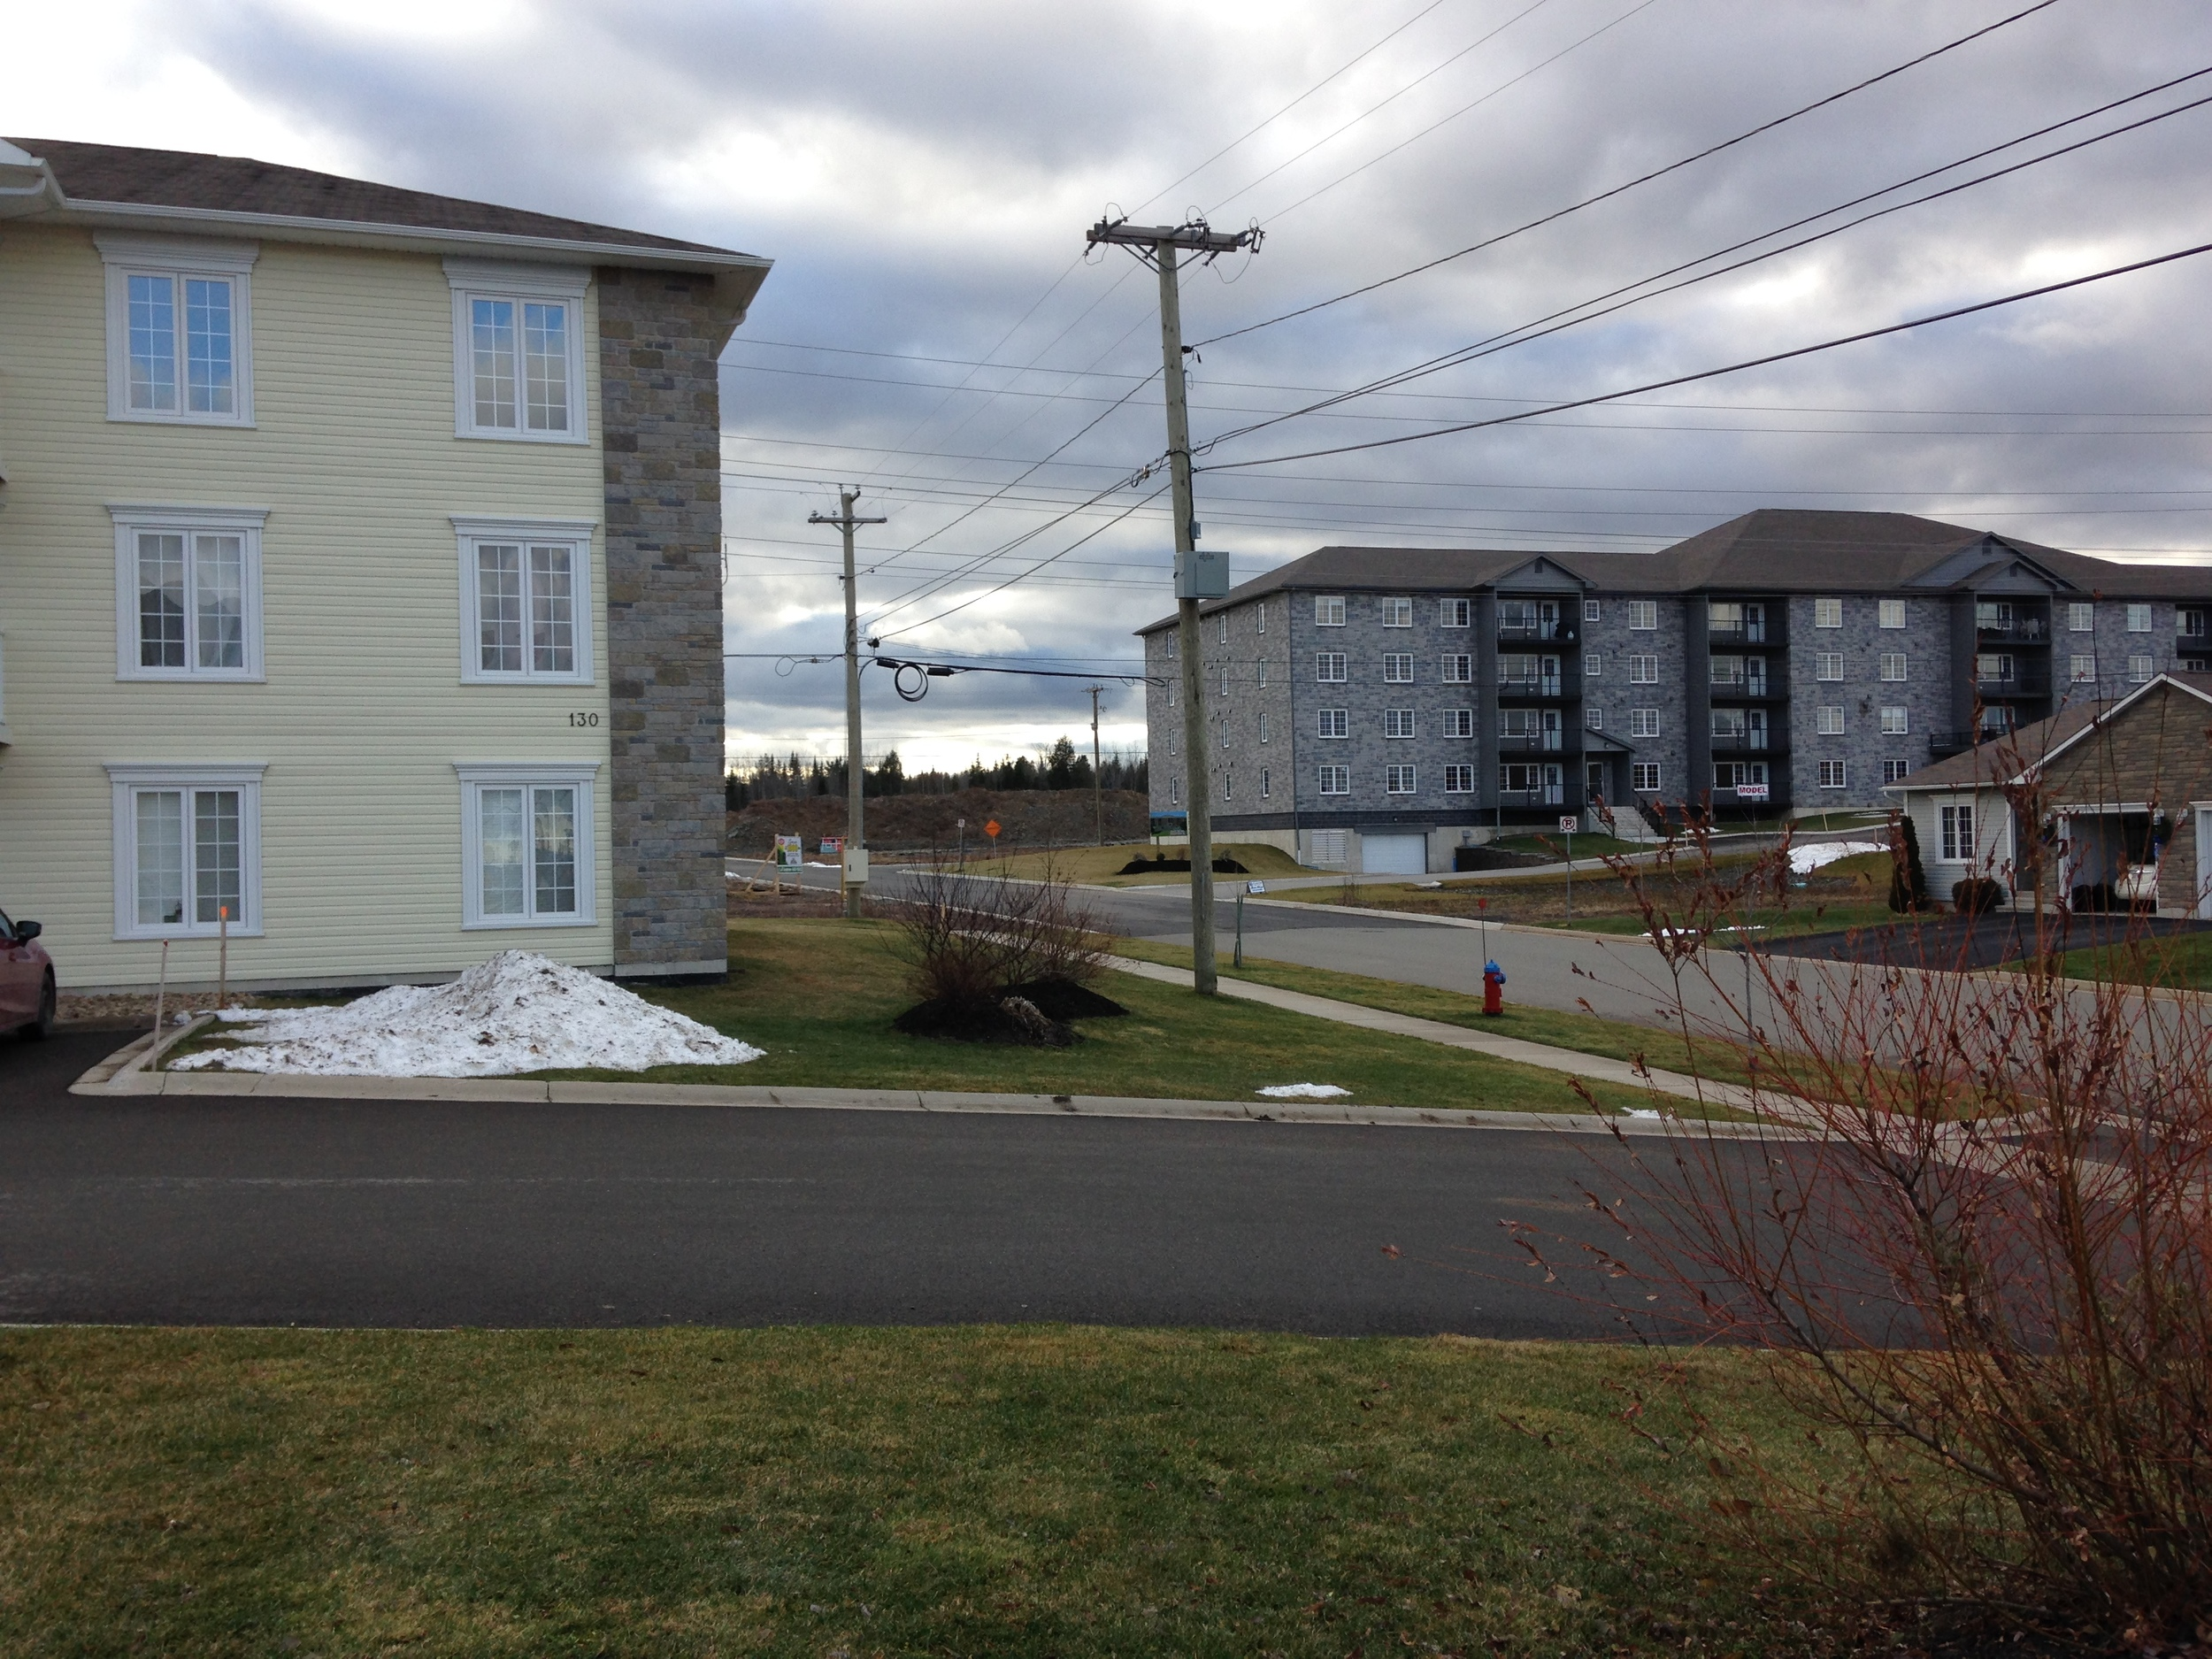 Garden apartments next to single family homes (Bishop Drive area, Fredericton)